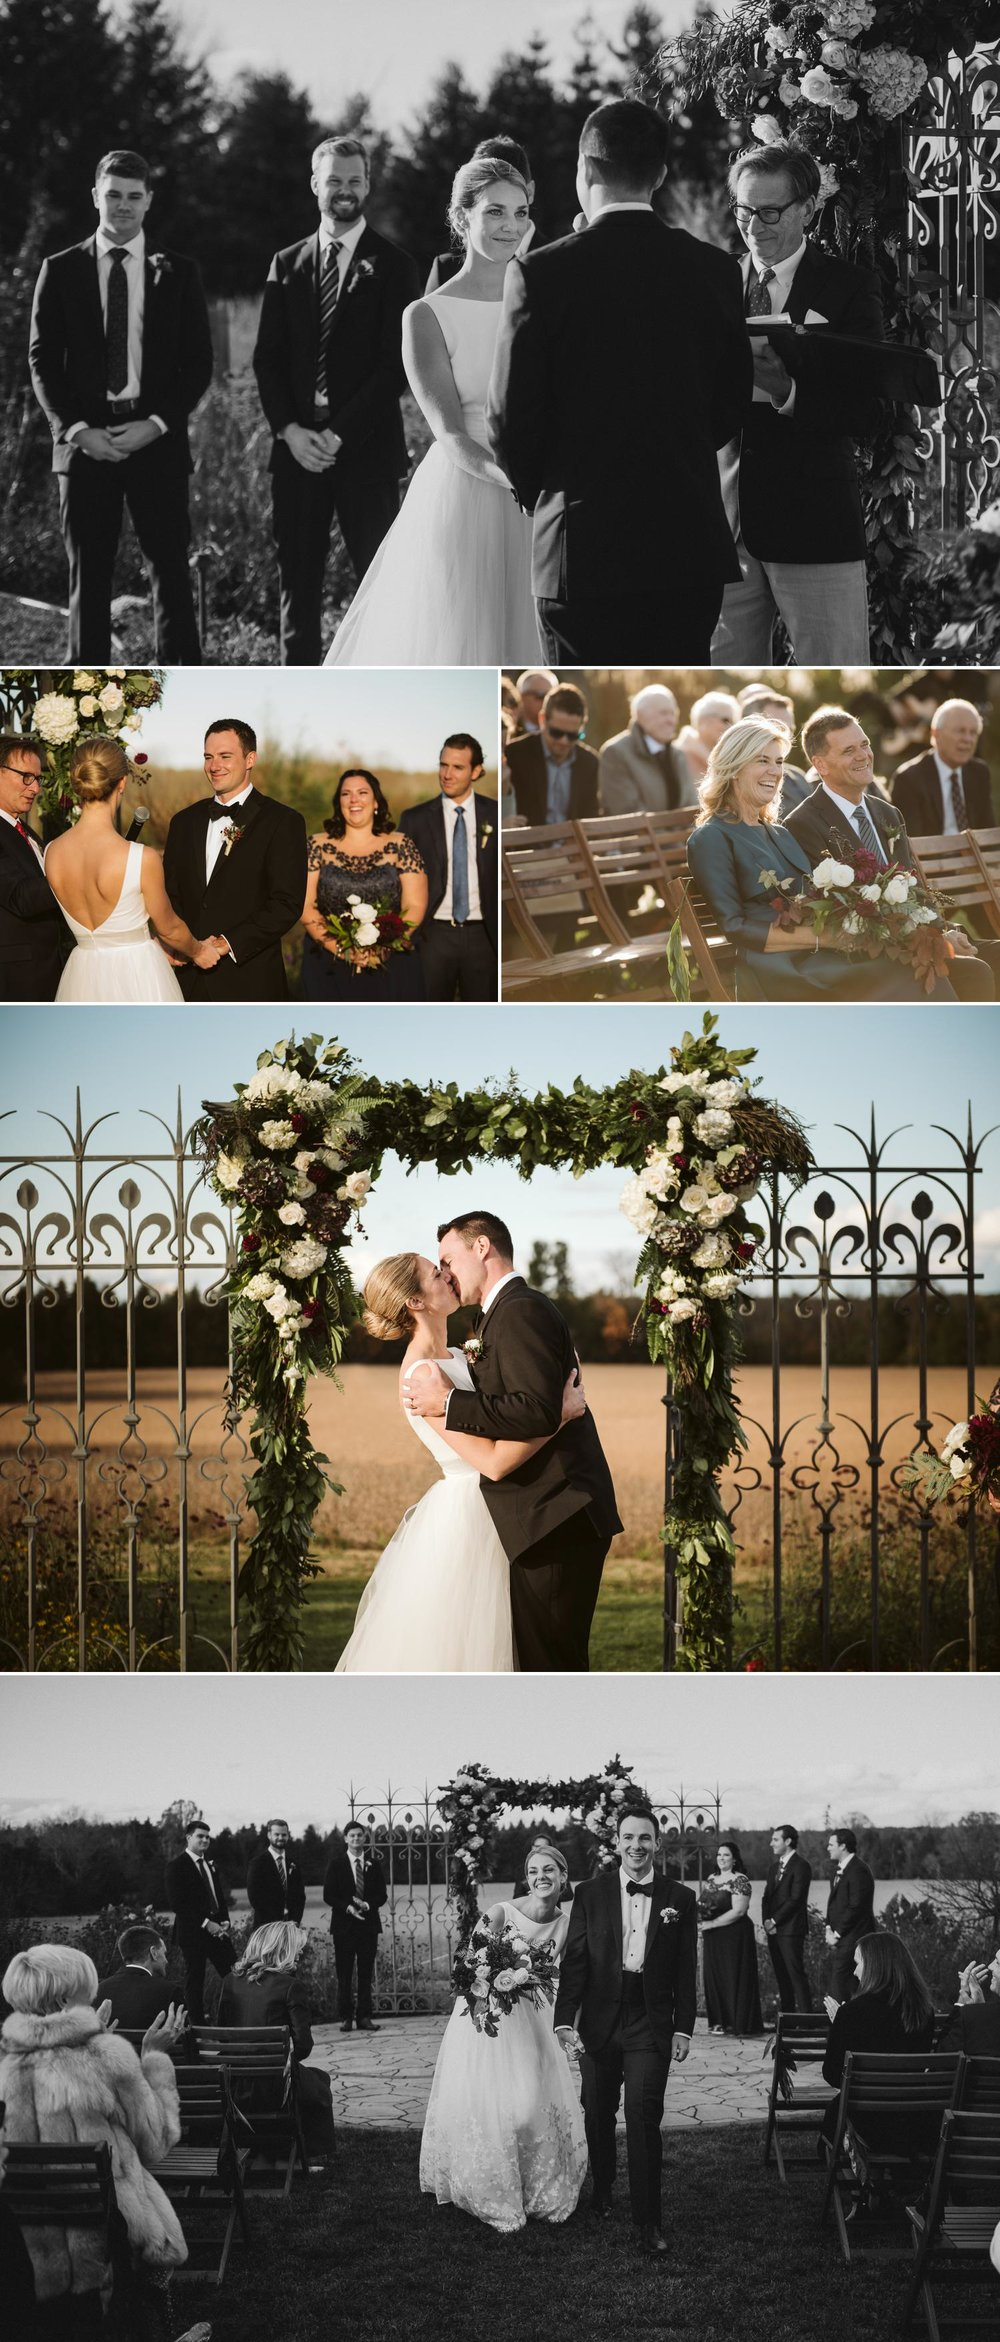 Wedding ceremony photos at evermore events